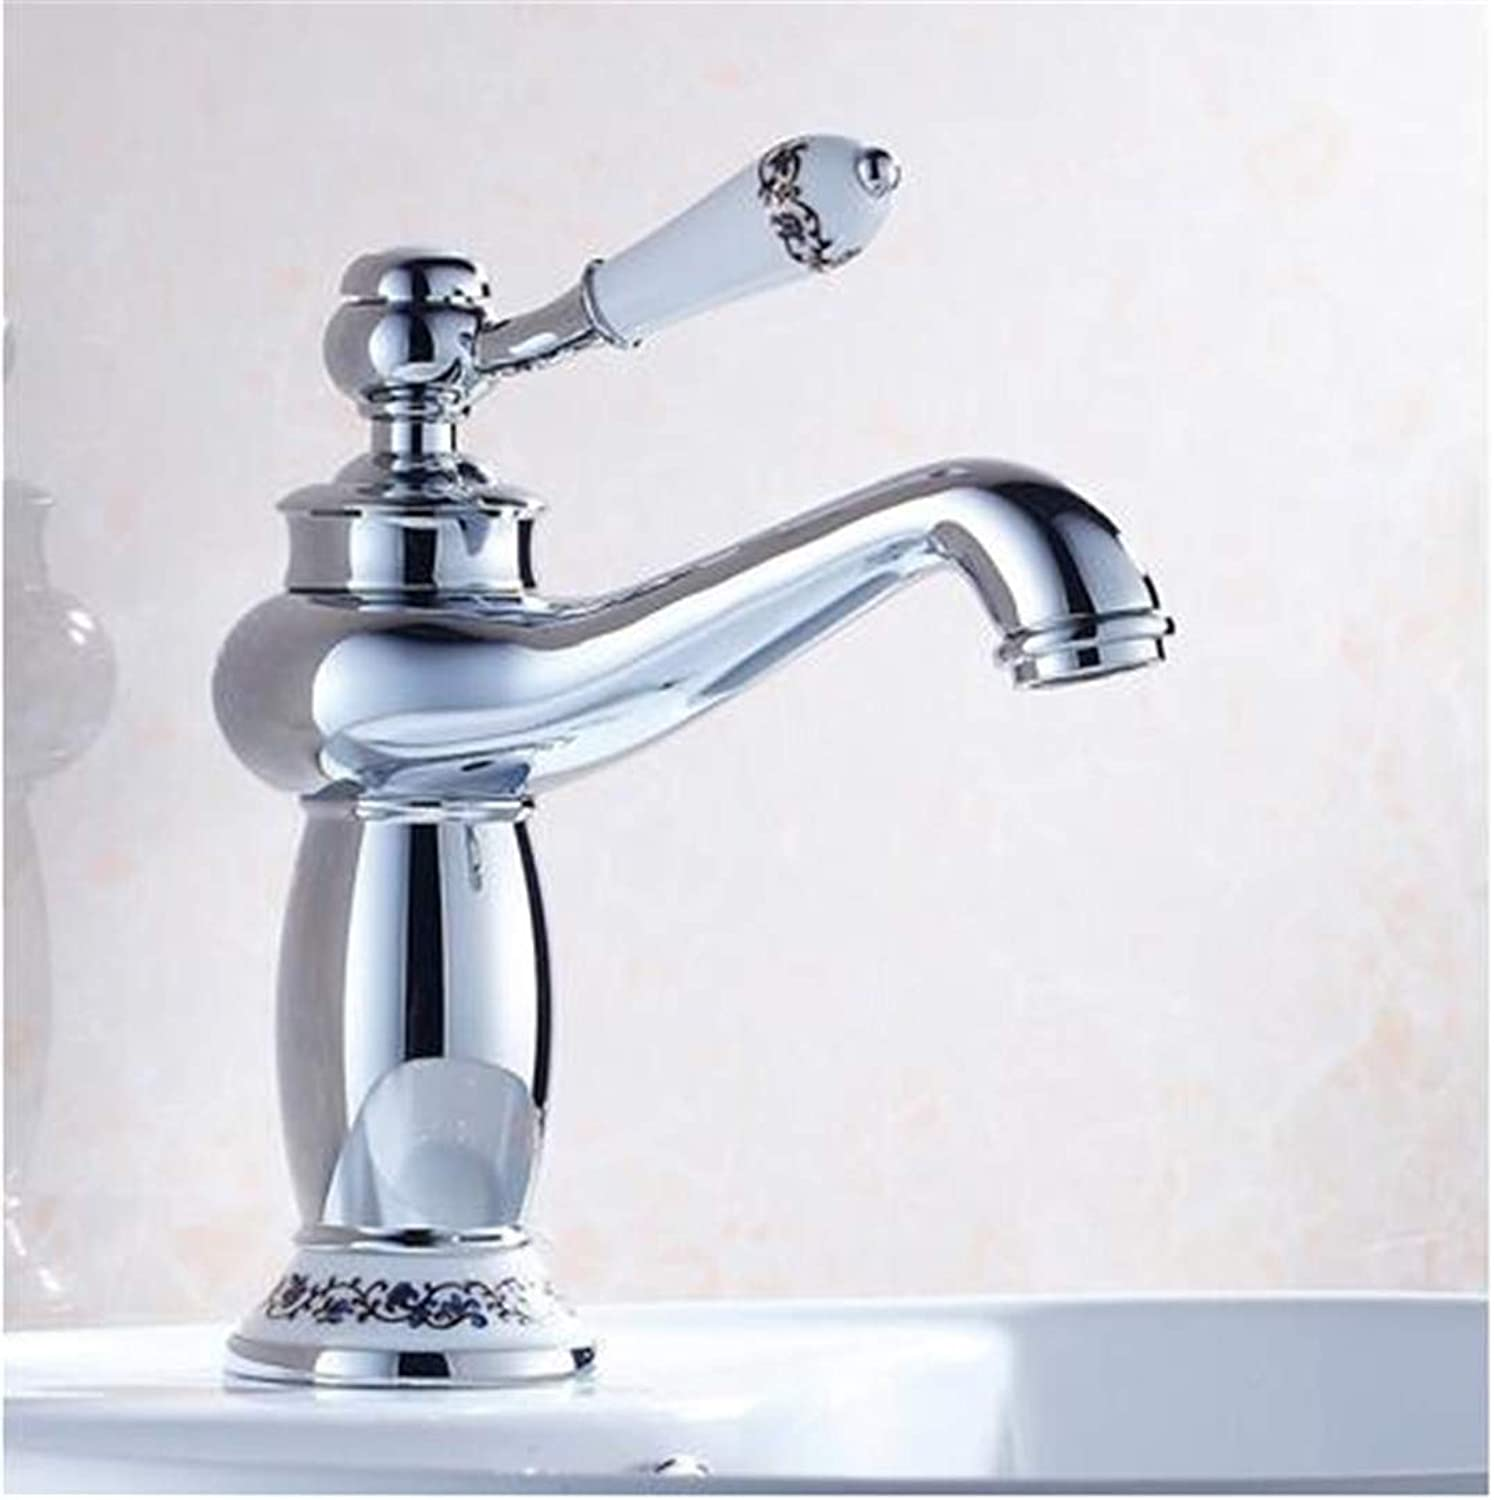 Taps Kitchen Faucet Bathroom Taps Faucet Waterfall Tapbathroom Basin Vessel Sink Faucet with Hot and Cold Water Hose Deck Mounted Wash Basin Pop Up Drain